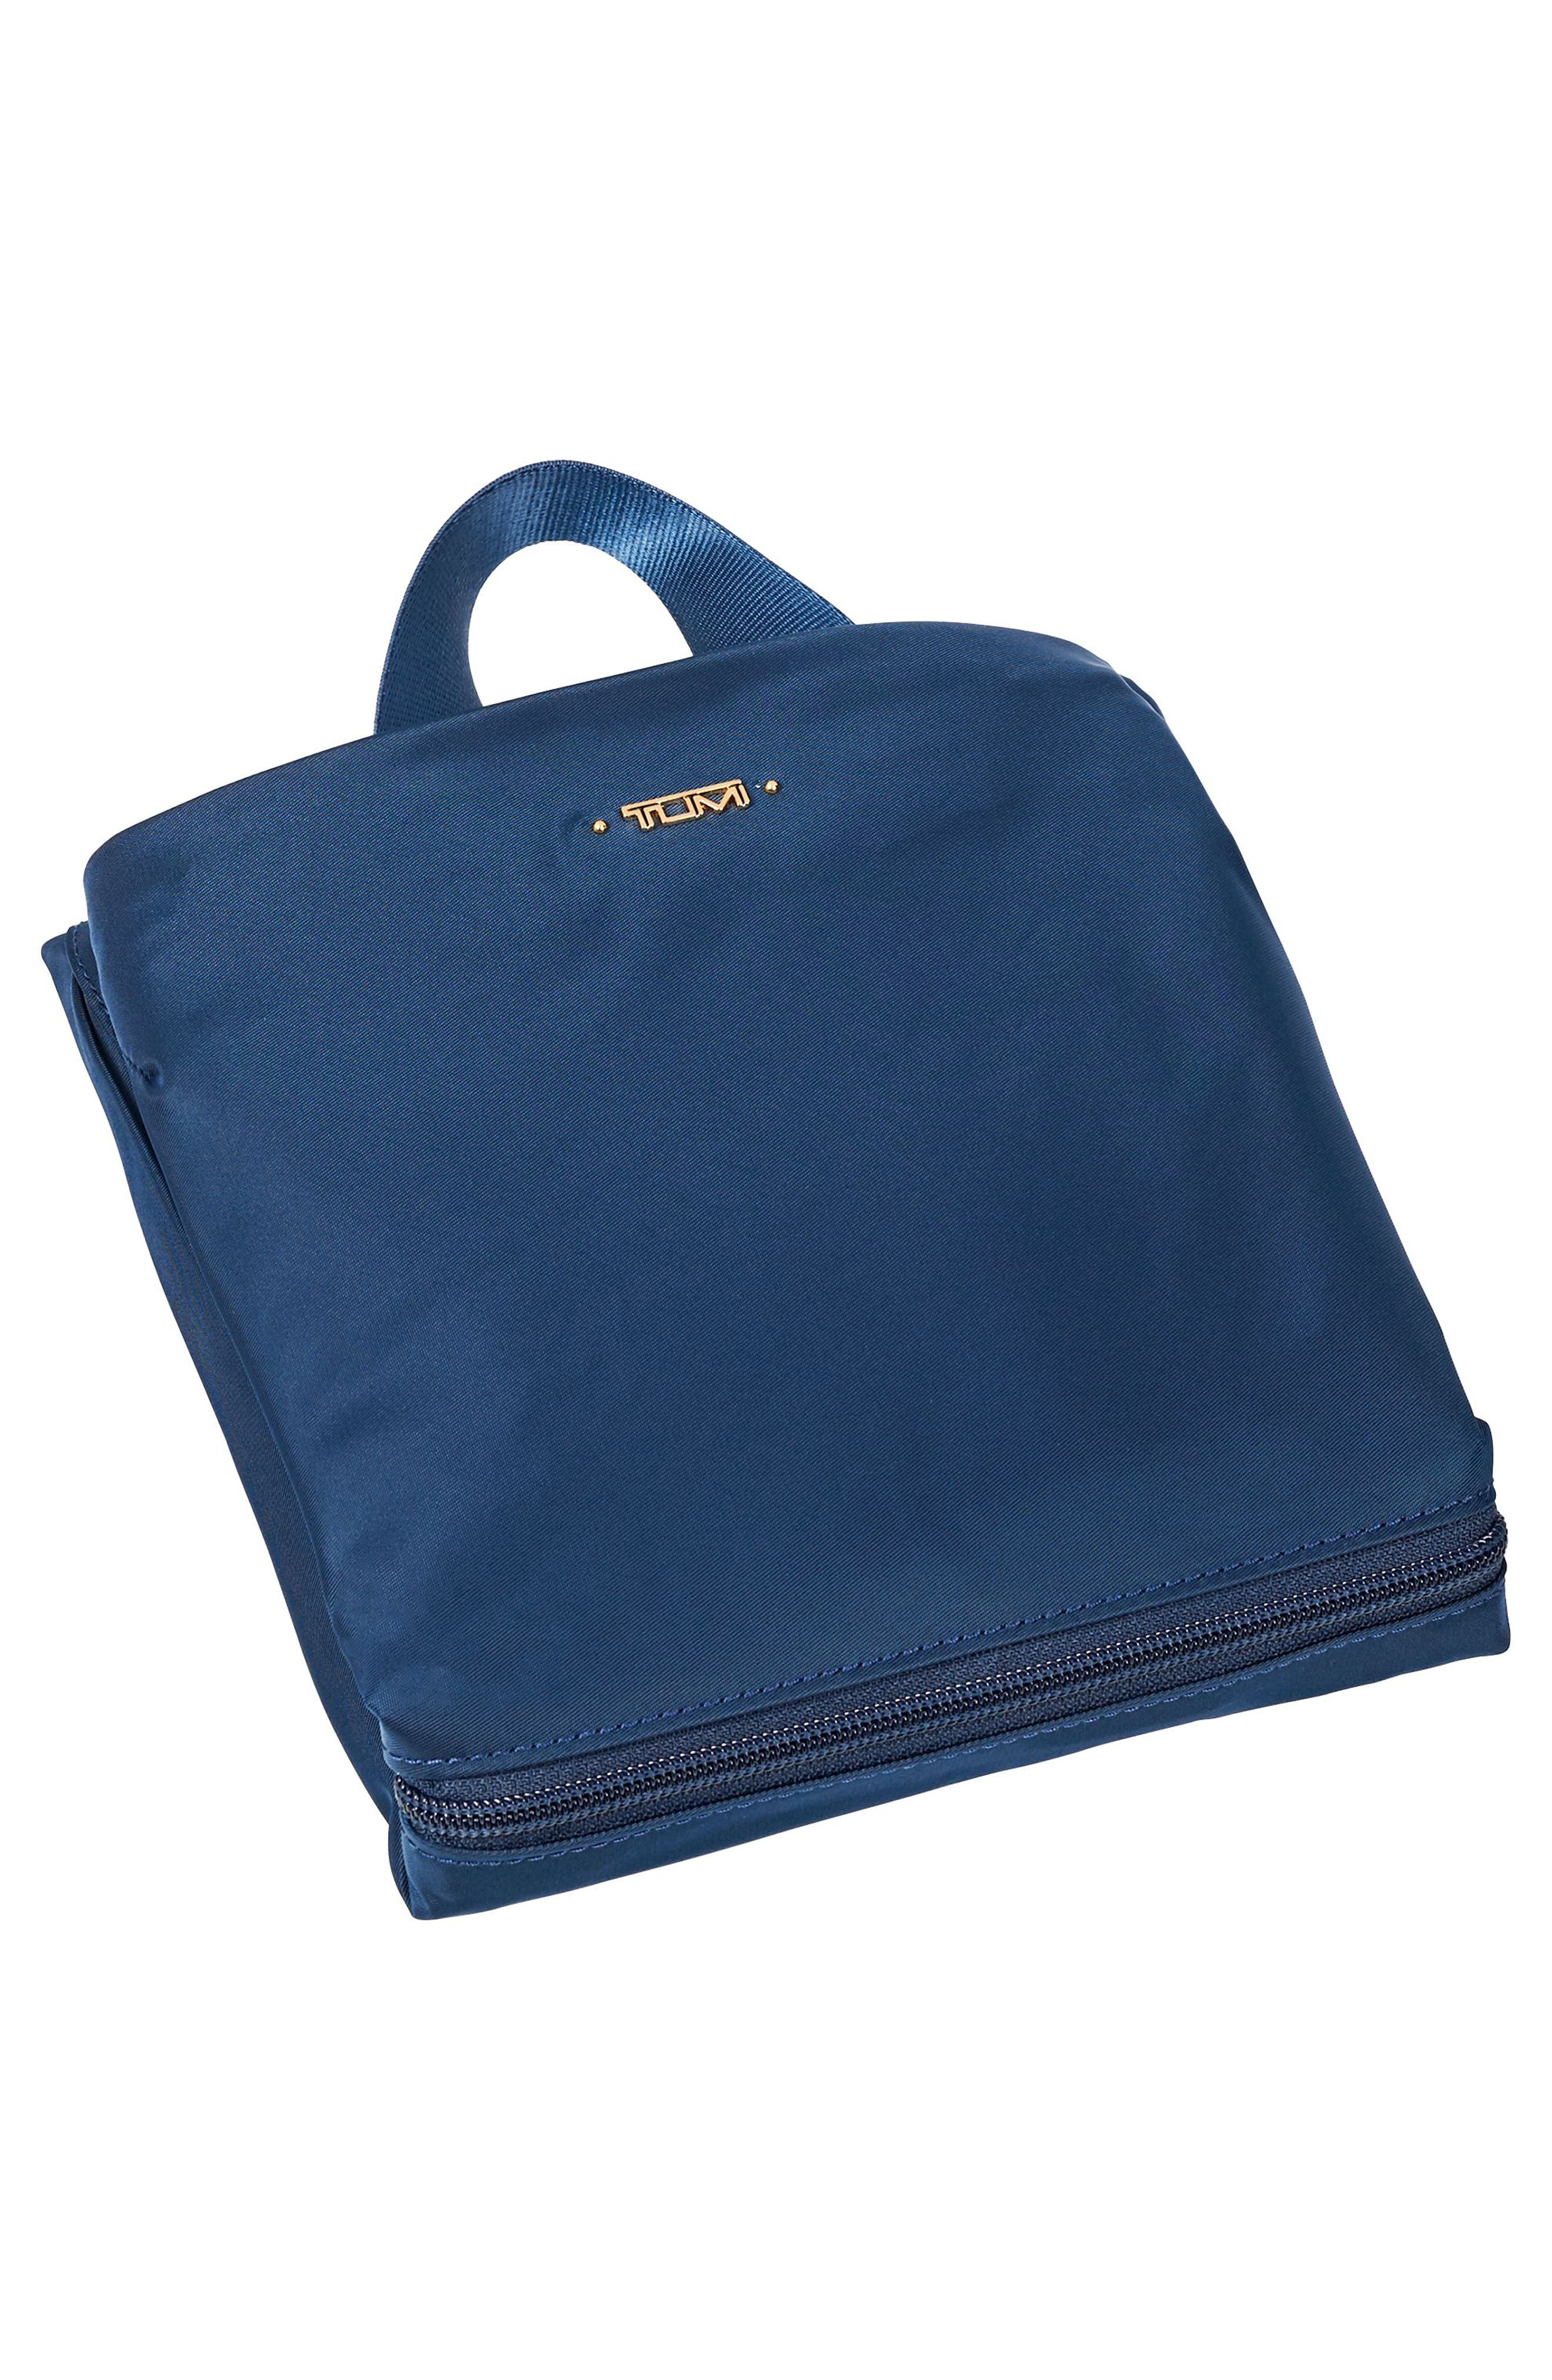 Just in Case<sup>®</sup> Back-Up Tavel Bag,                             Alternate thumbnail 5, color,                             Ocean Blue